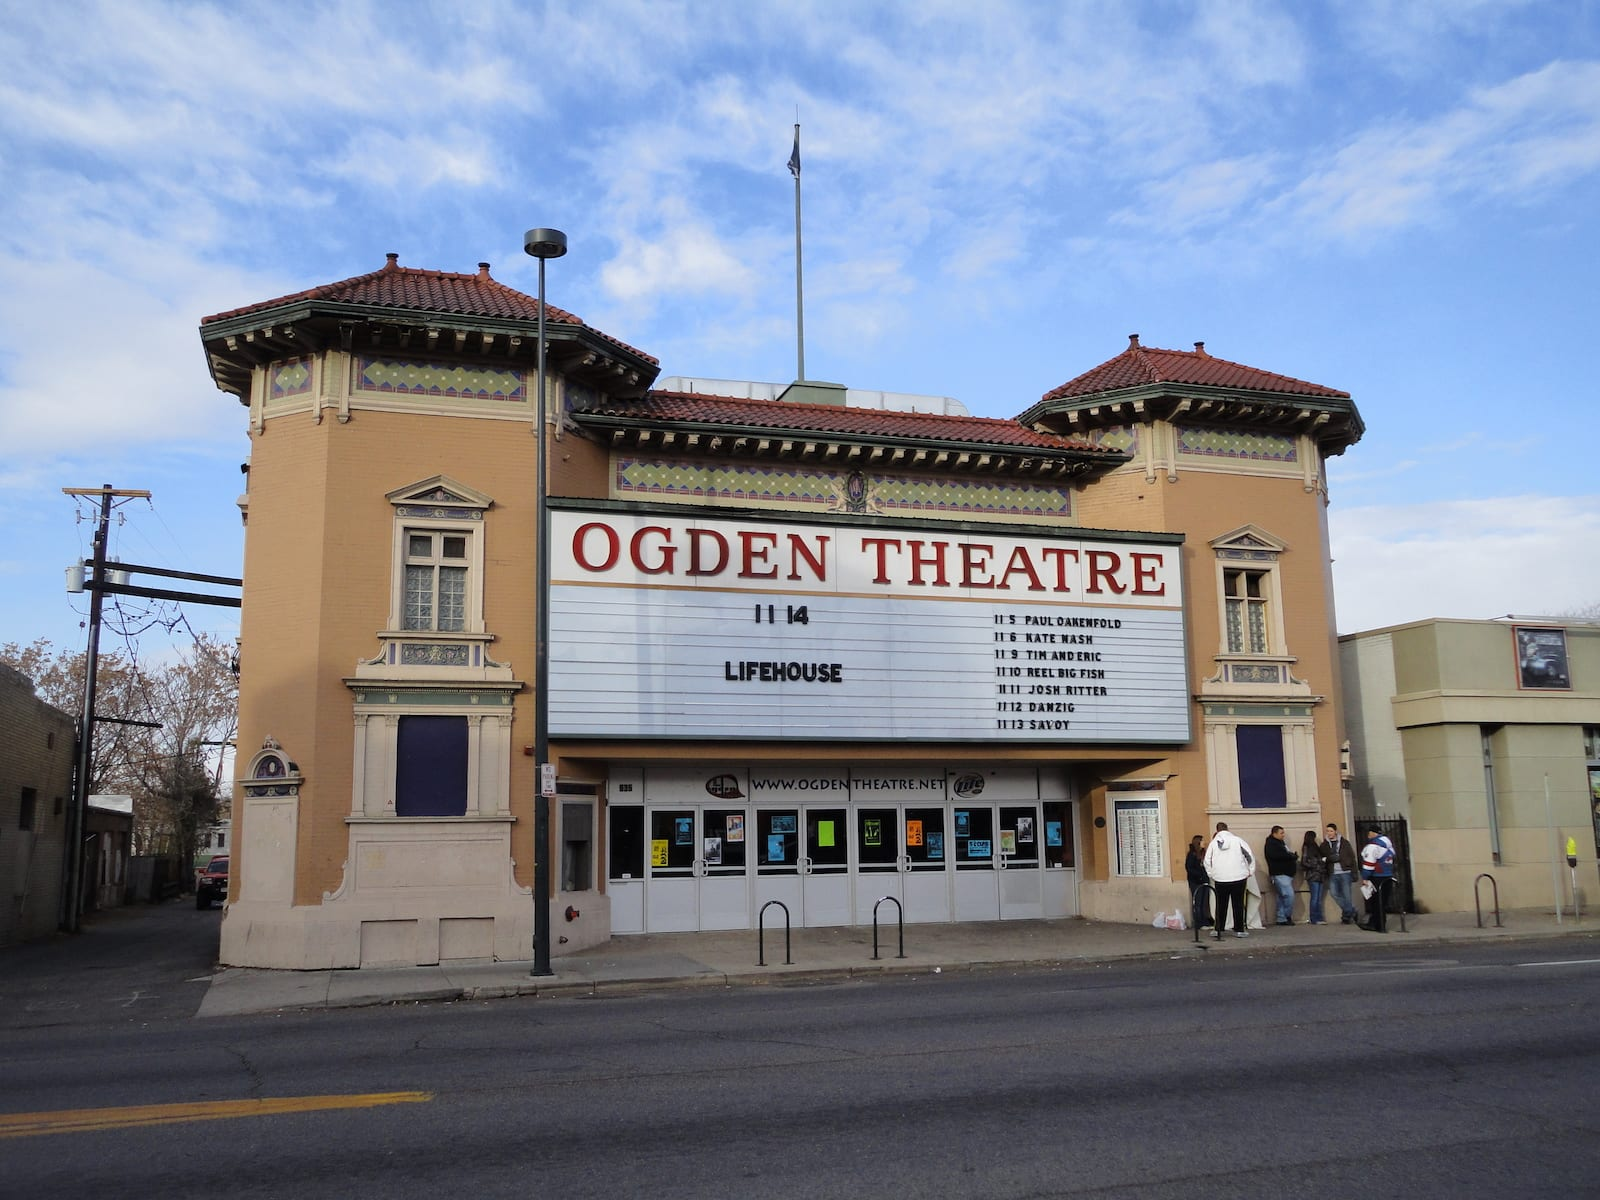 Ogden Theatre, Denver, Colorado